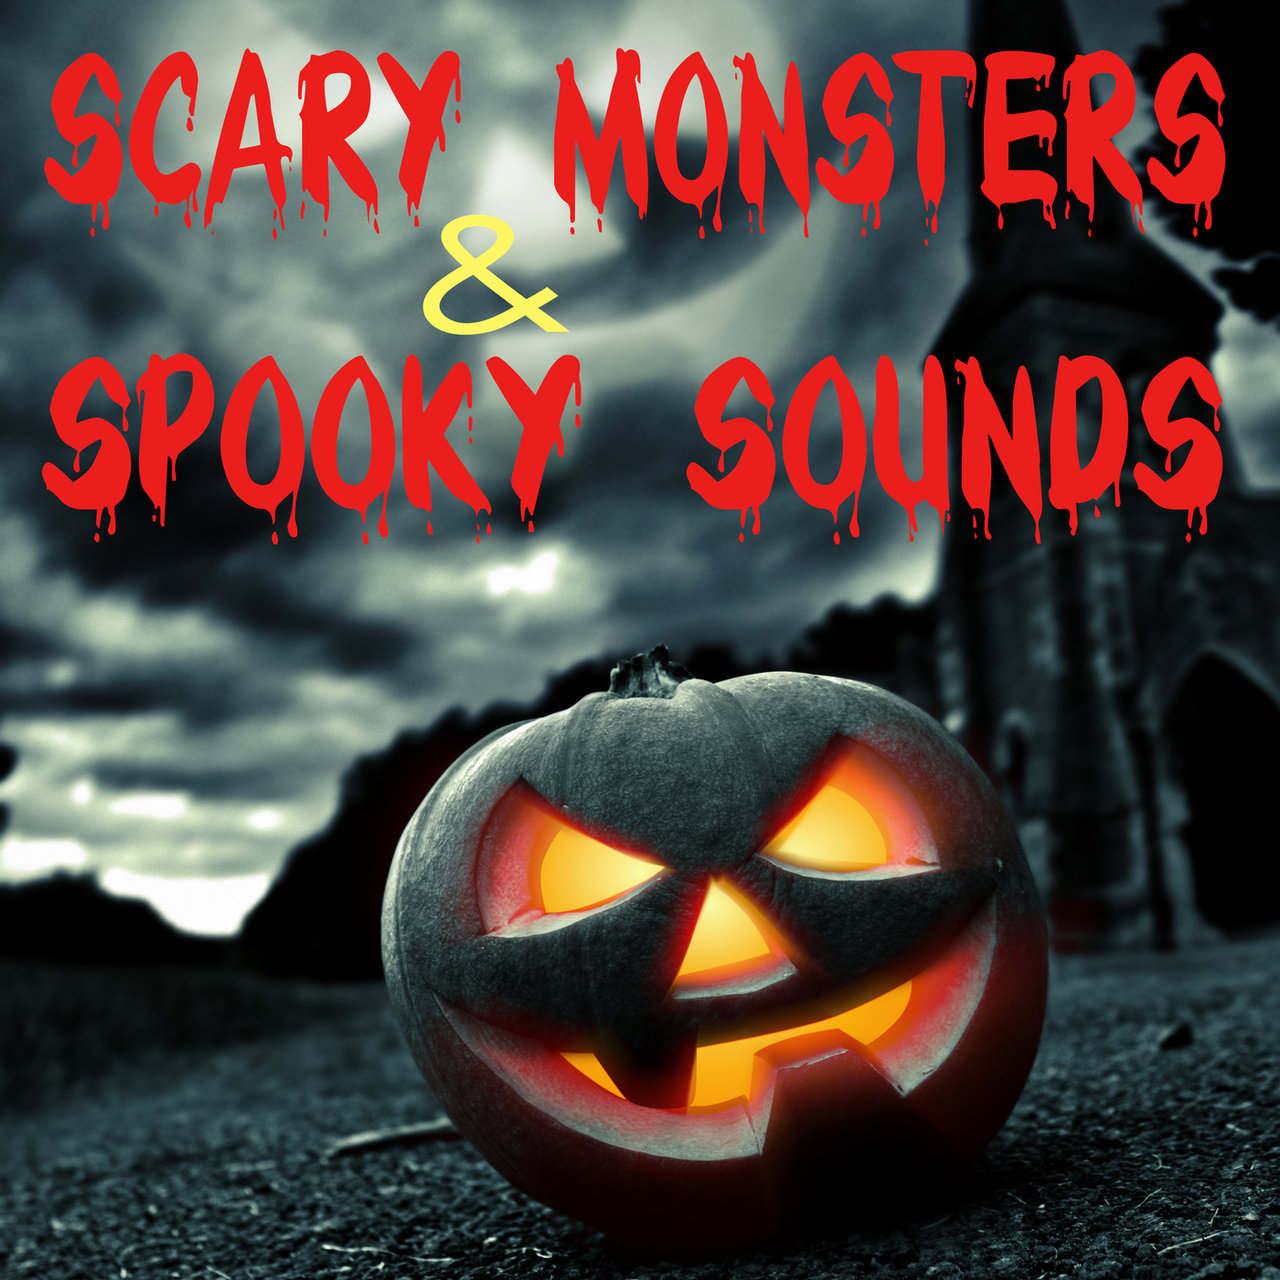 TIDAL: Listen to Scary Monsters and Spooky Sounds - Horror Music ...